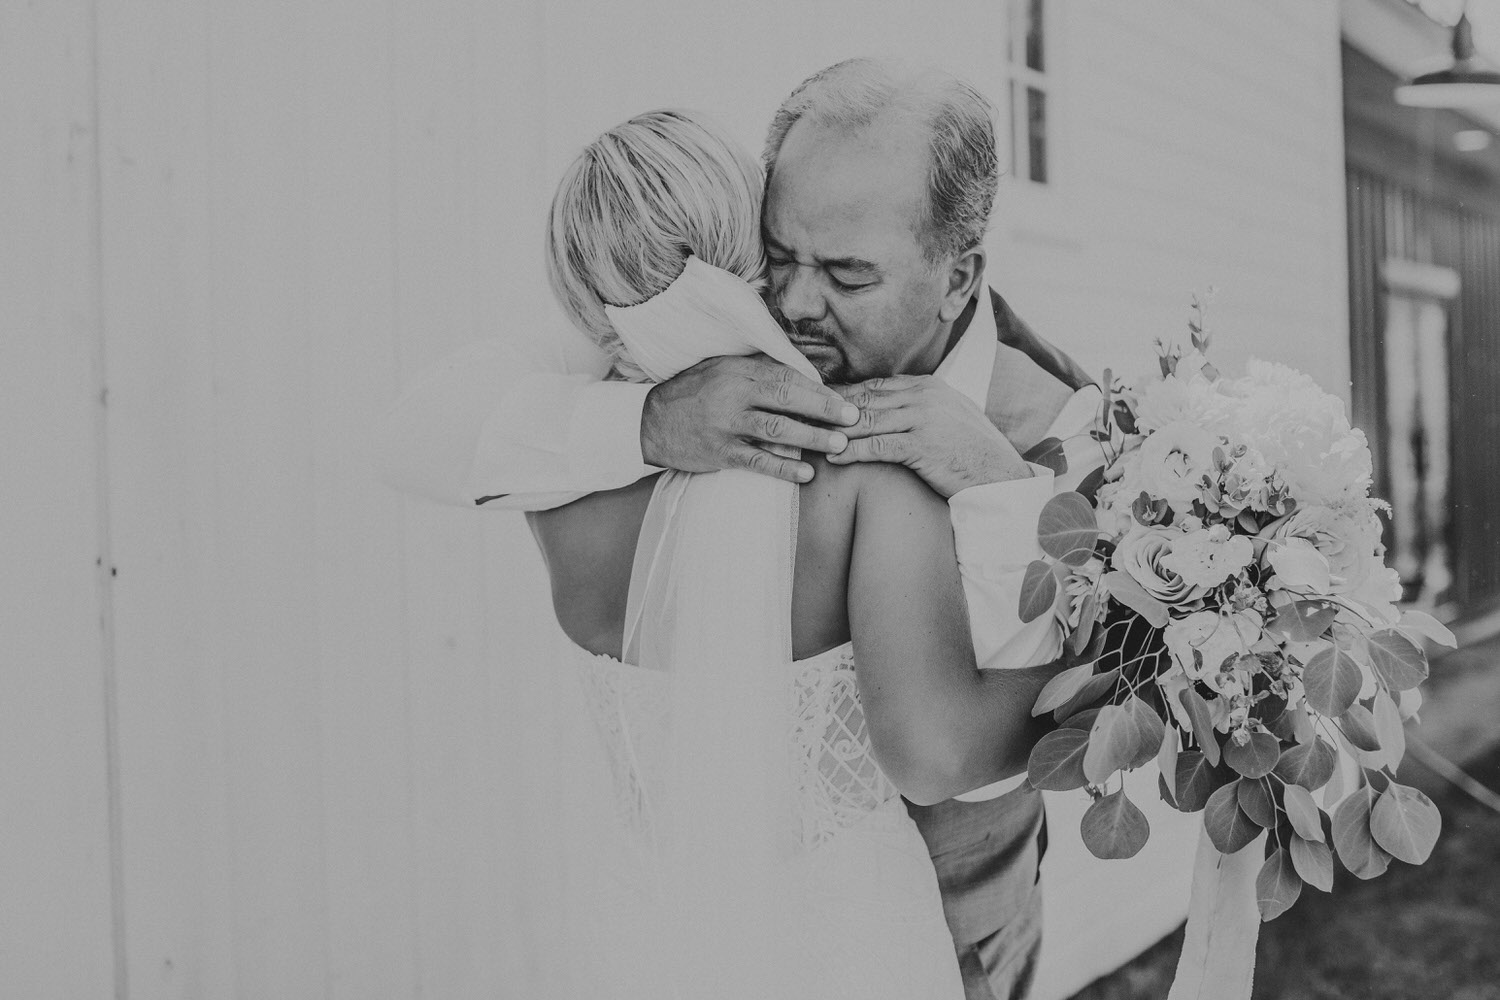 The Romigs were one of the easiest weddings in Bozeman Montana I've photographed. Their day was full of moments like these between her and her father.